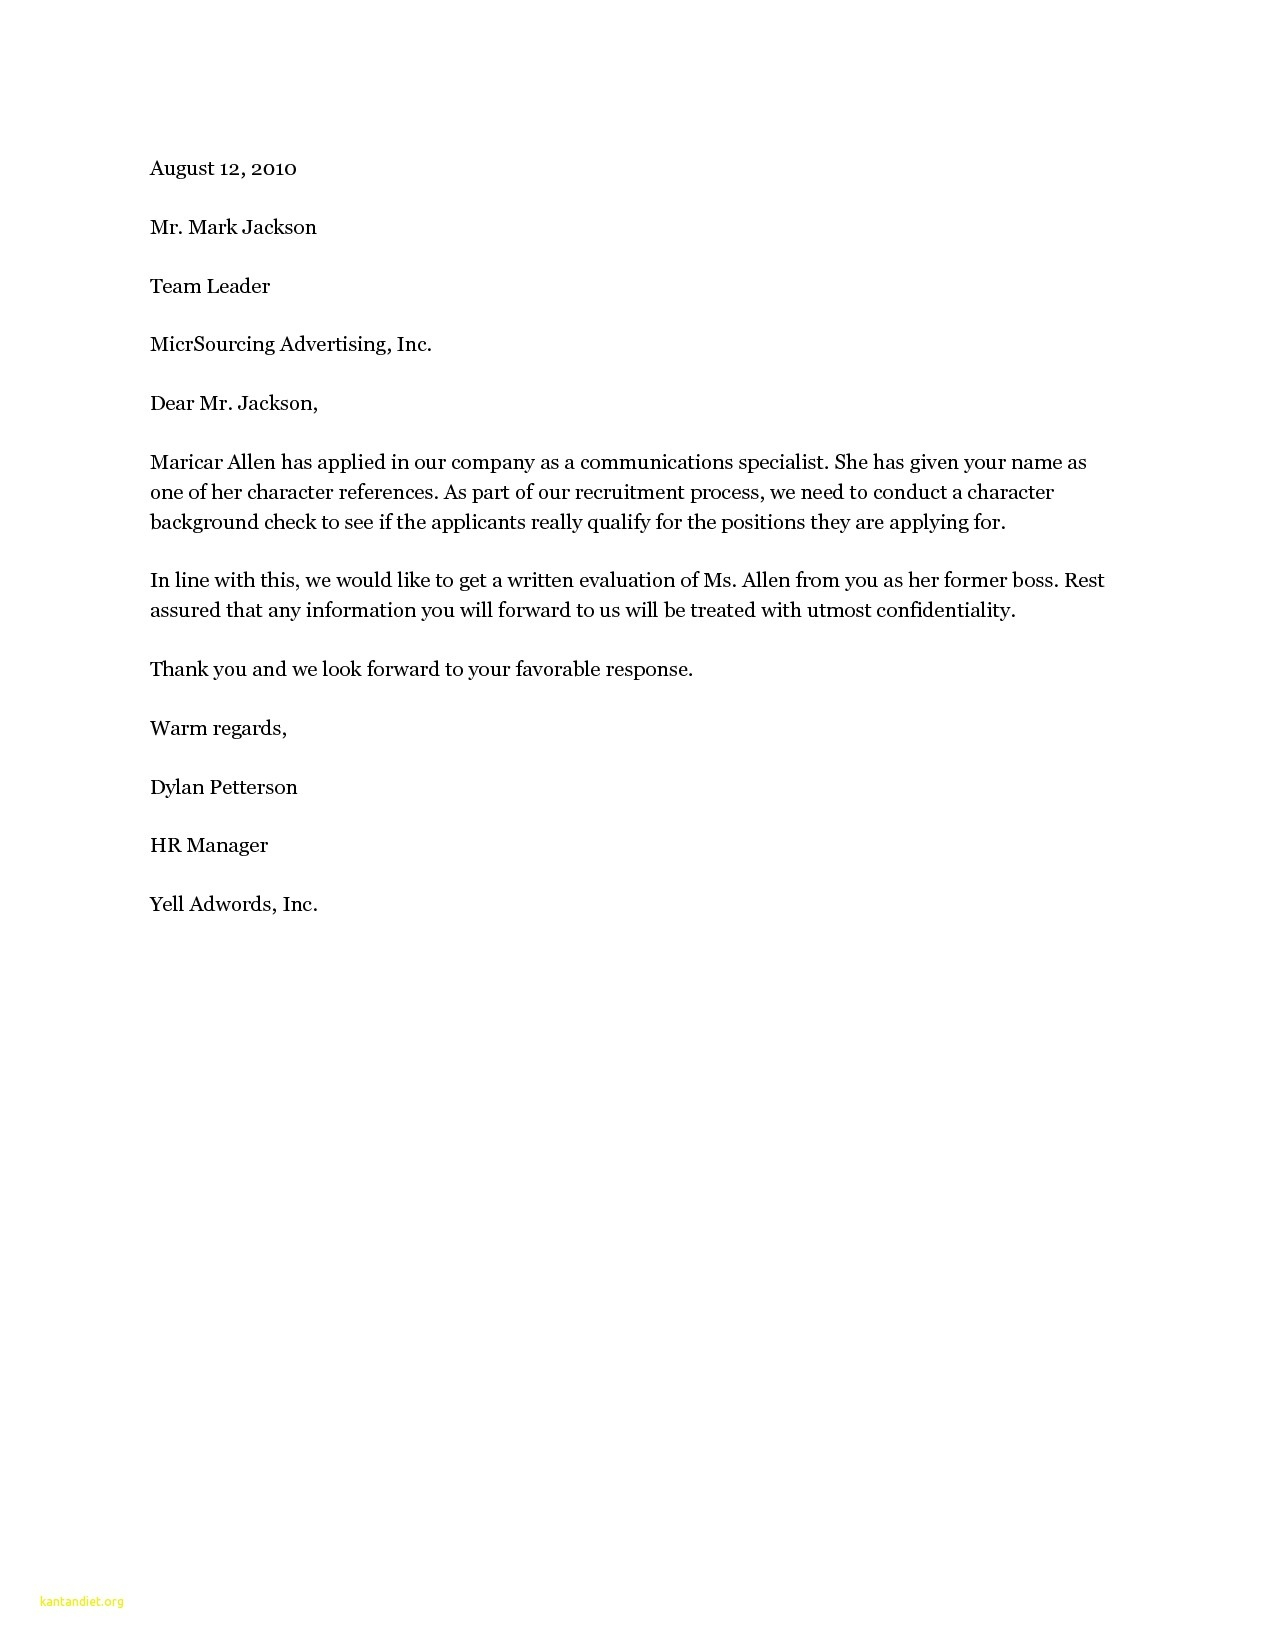 Personal Recommendation Letter Template Free - Luxury Resignation Letter Templates Free